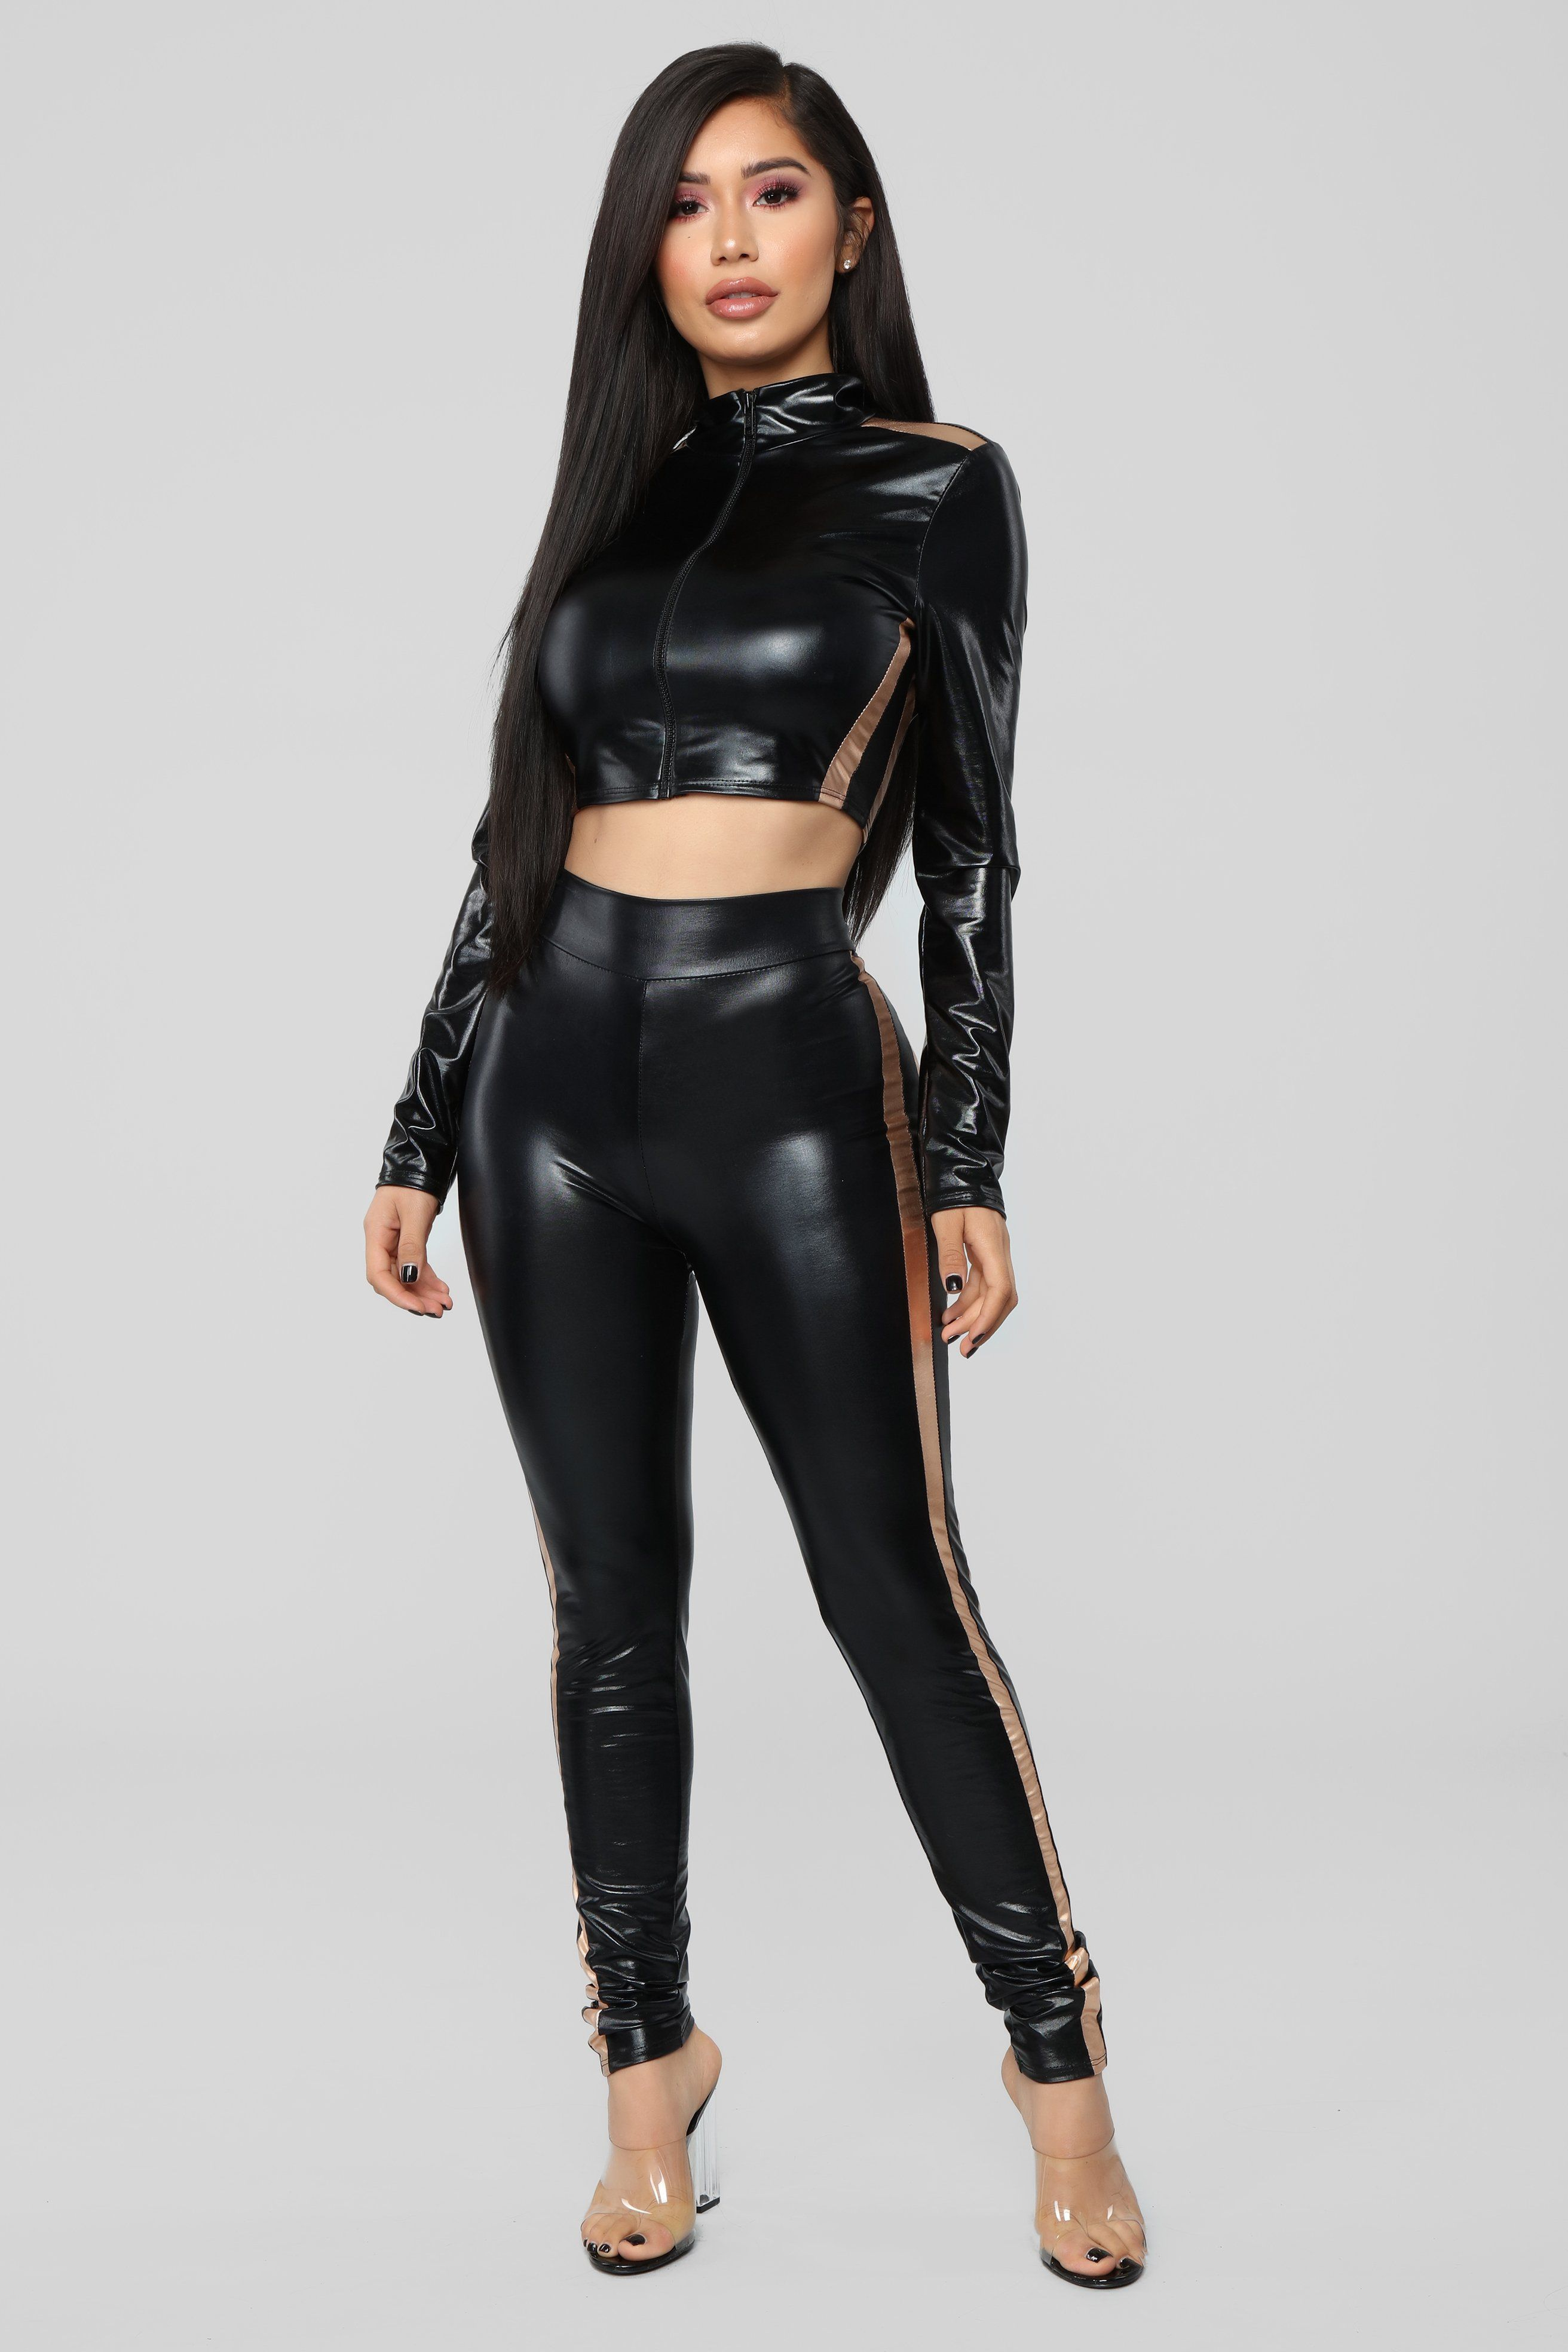 702eb6f64a328 Voodoo Patent Leggings - Black in 2019   miscellaneous   Leather ...